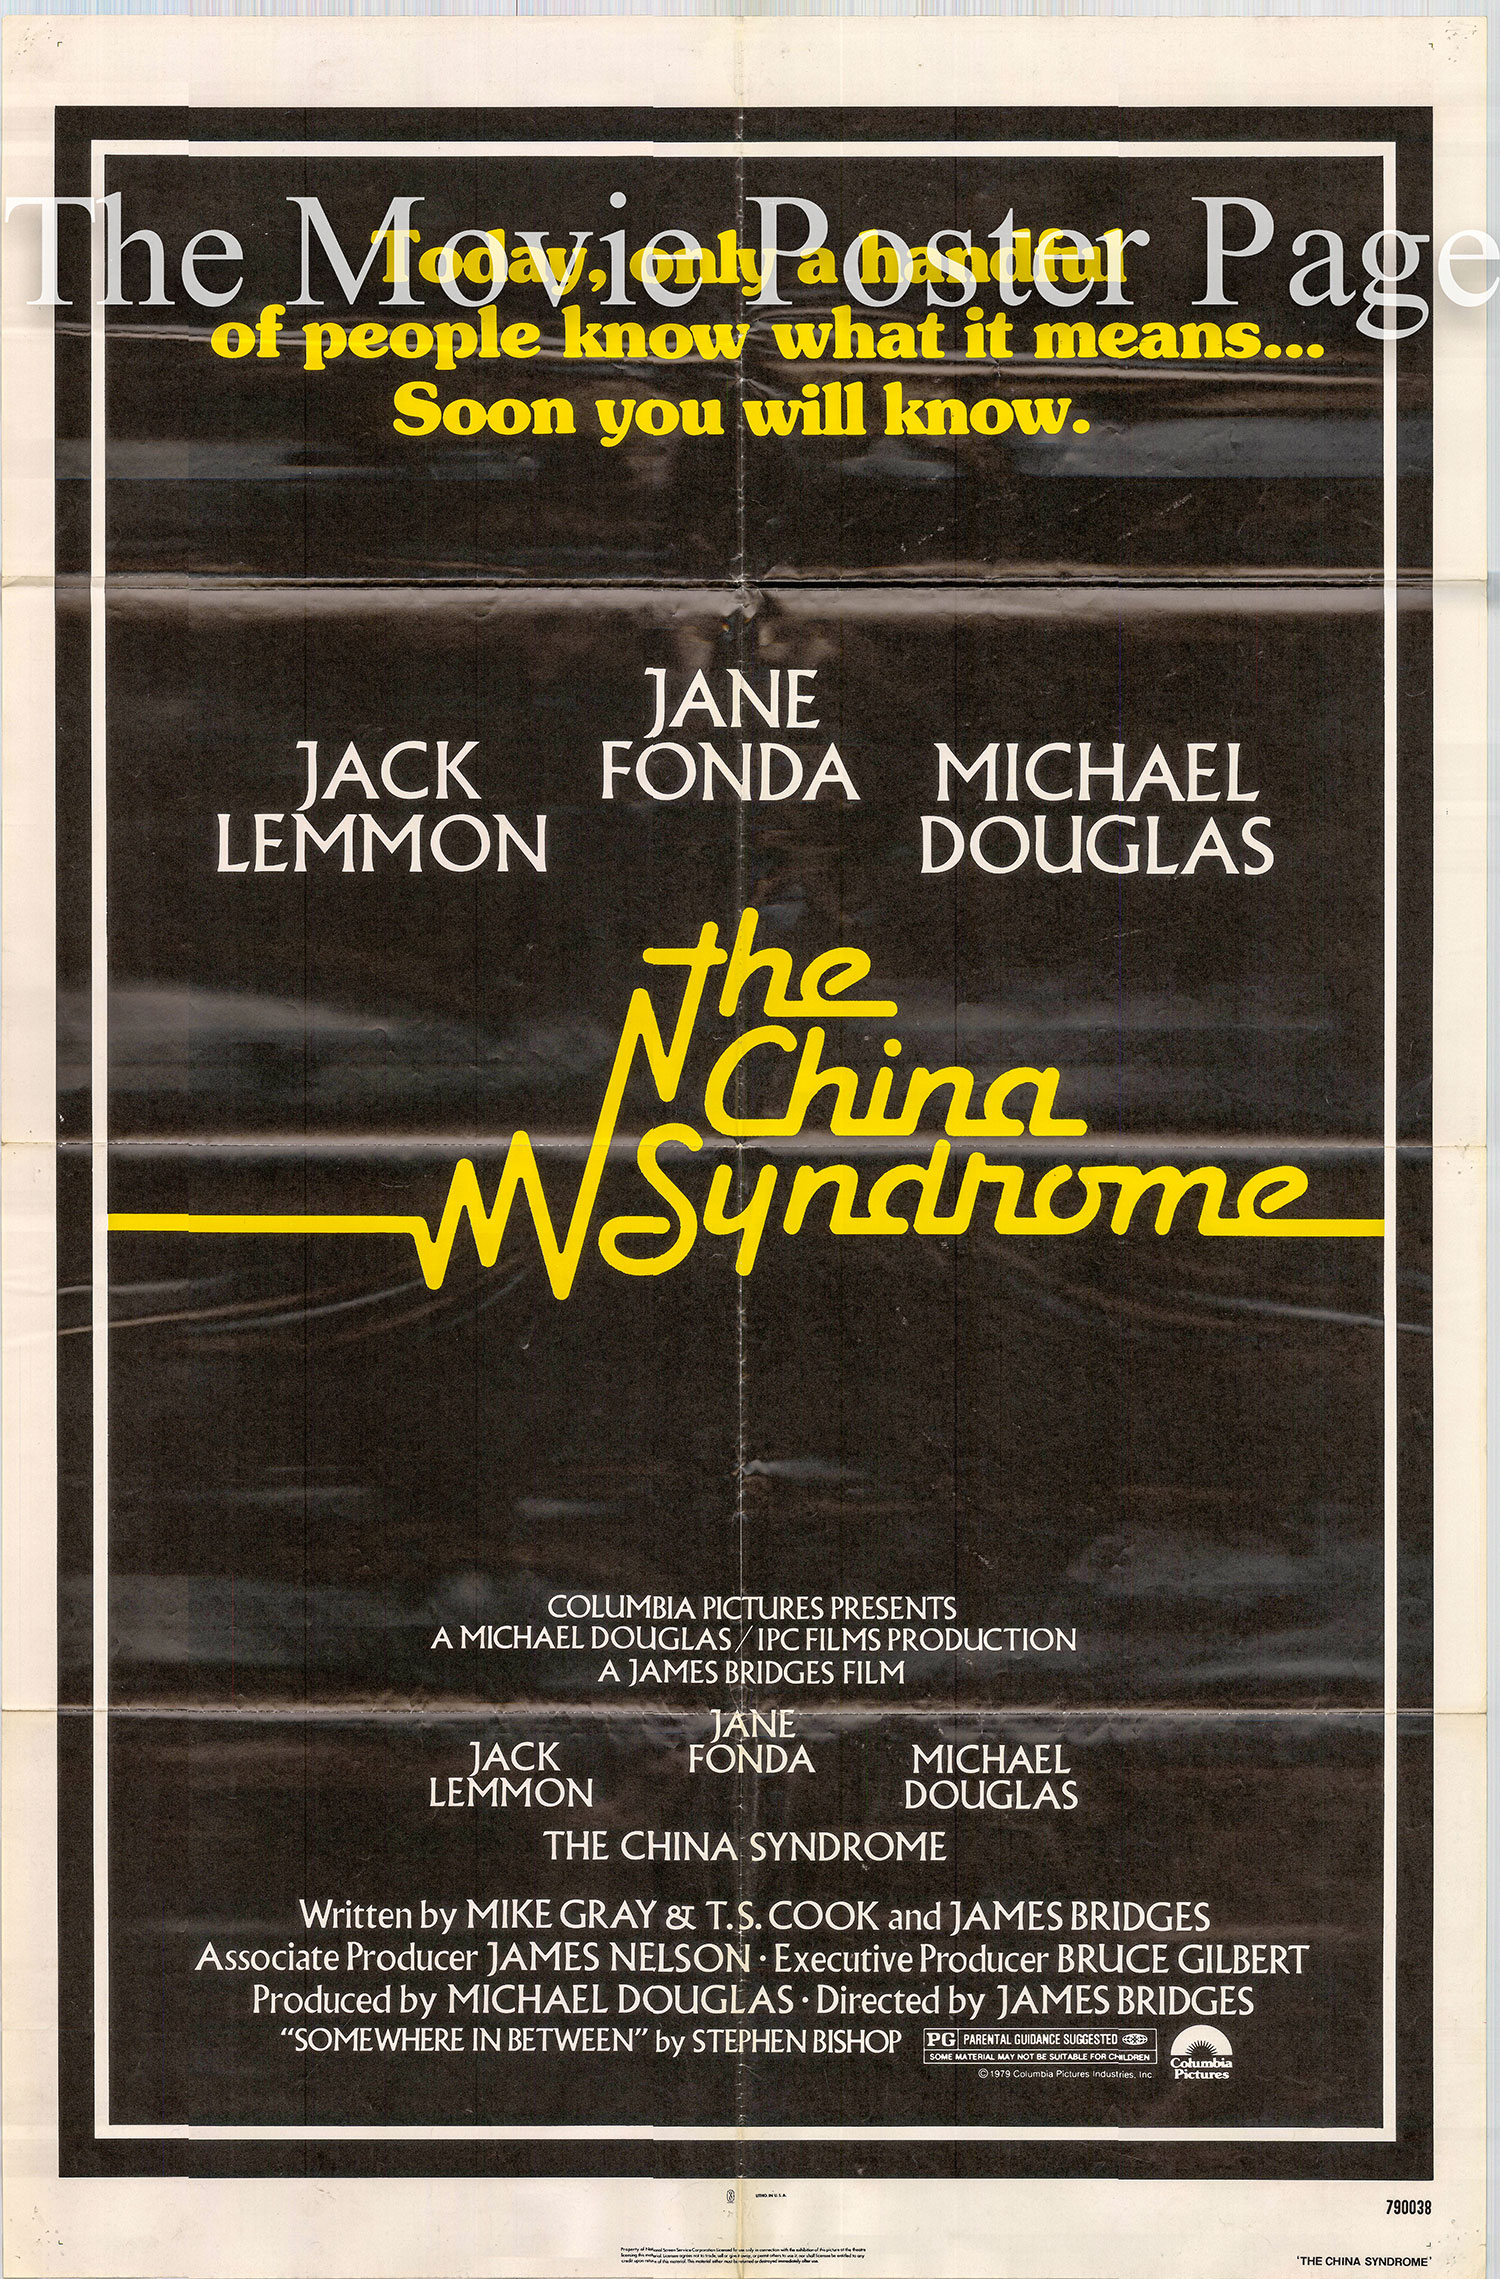 Pictured is a US one-sheet poster for the 1979 James Bridges film The China Syndrome starring Jack Lemmon.